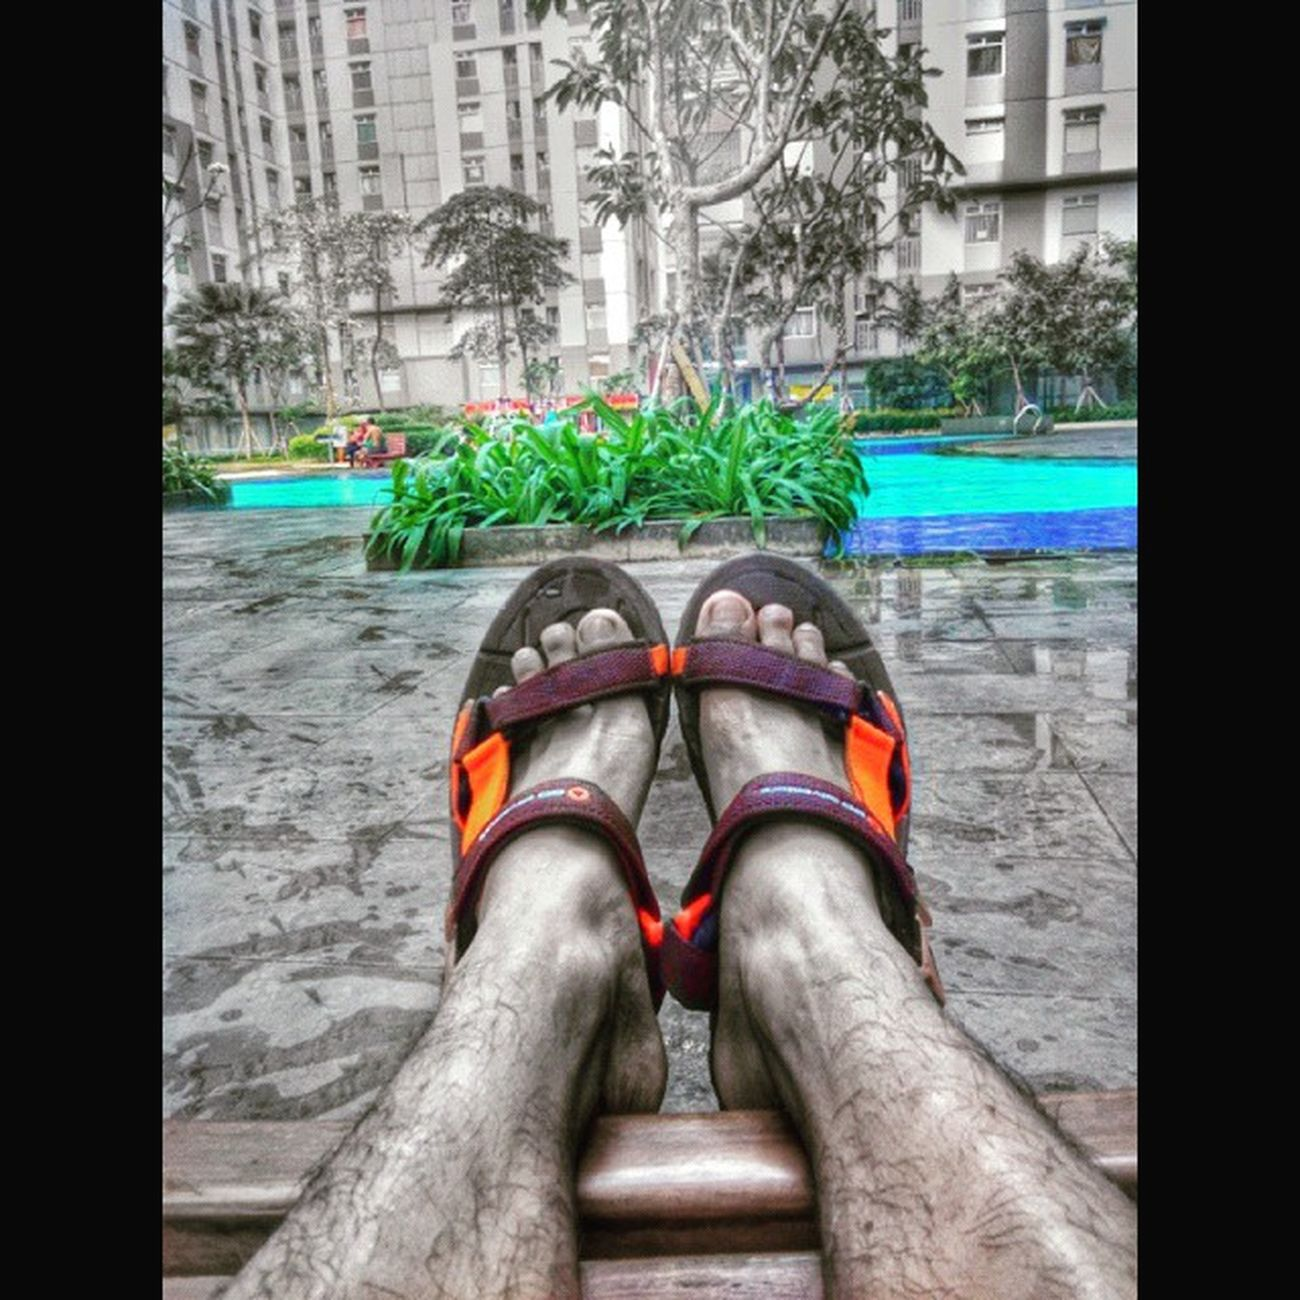 Instasize INDONESIA Hdr_pics HDR Greenbay Instgood Art Relax Swimingpool Instagood My Vivo Falsecolor